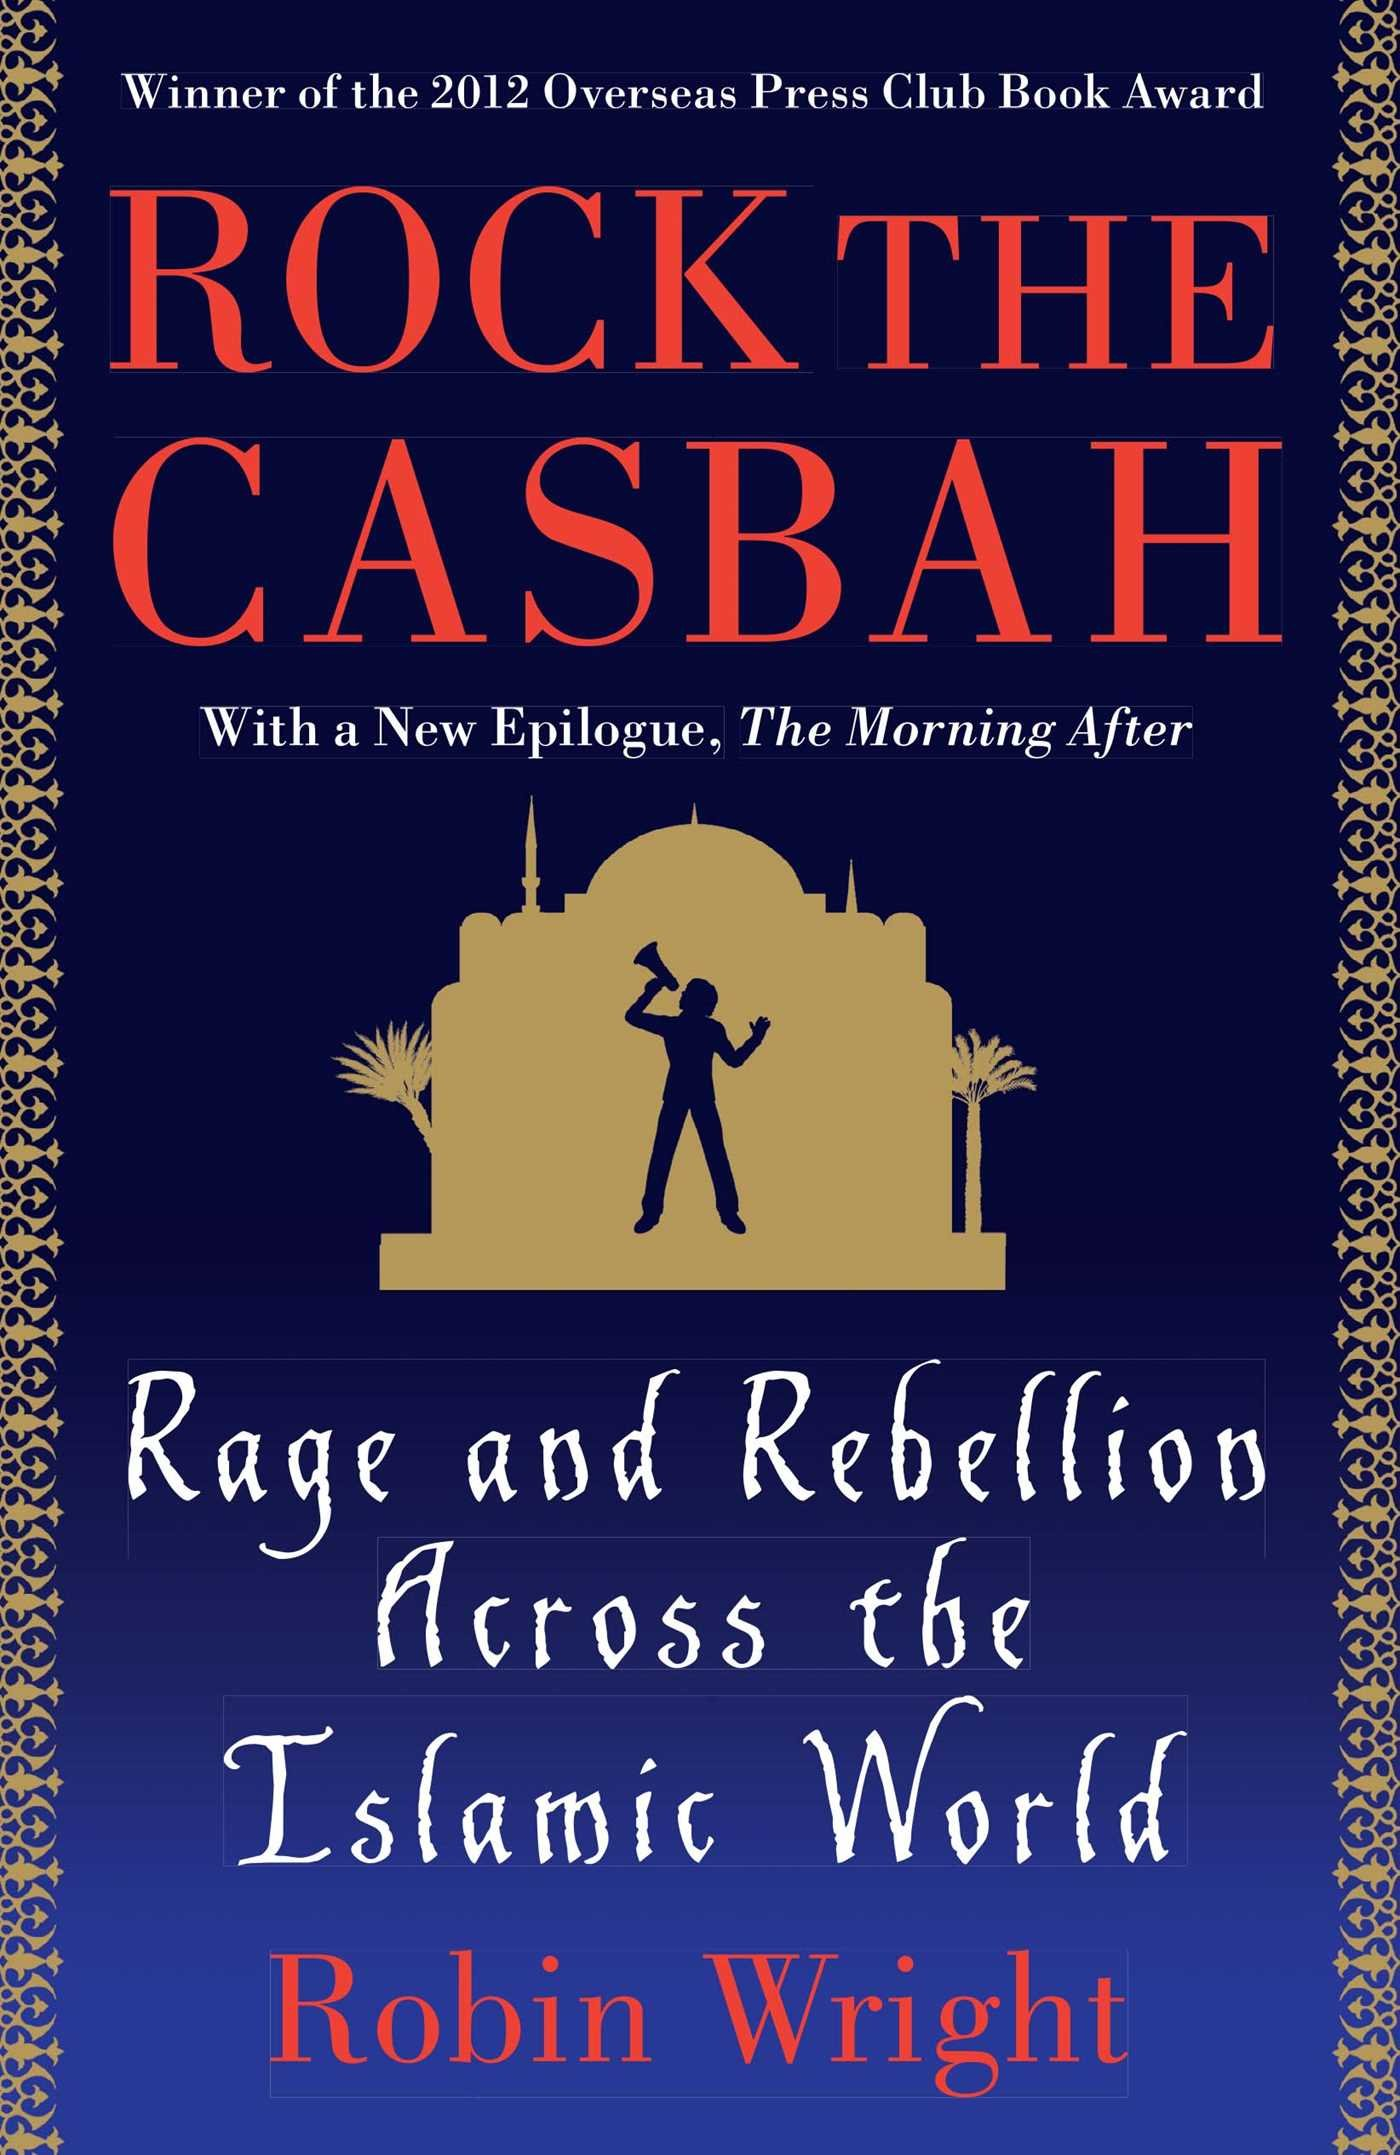 Rock the Casbah: Rage and Rebellion Across the Islamic World with a